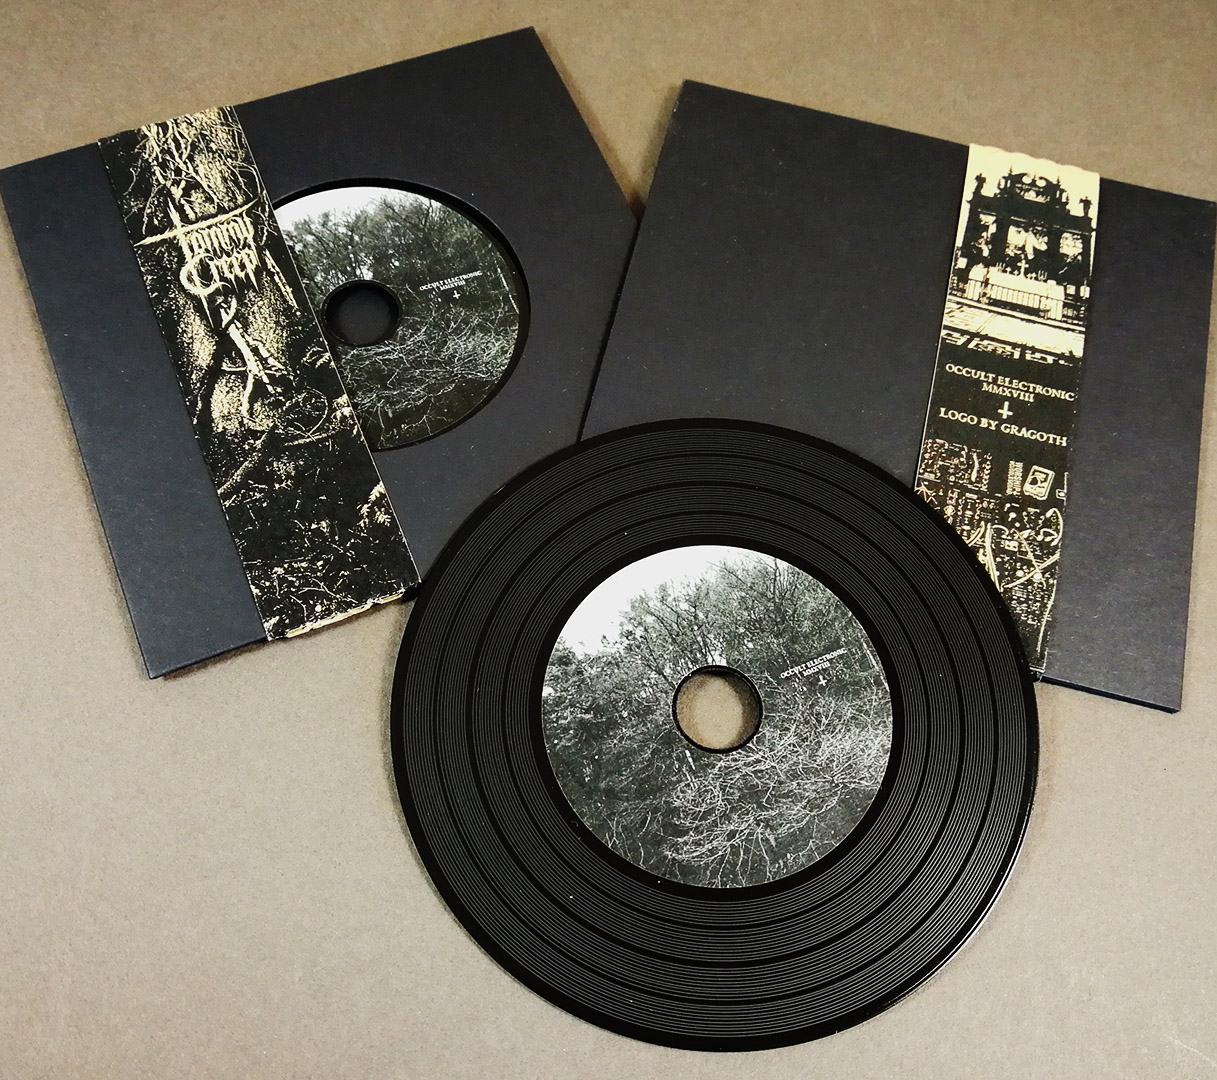 Black vinyl CDs in solid black record-style wallets with brown Manila obi-strips